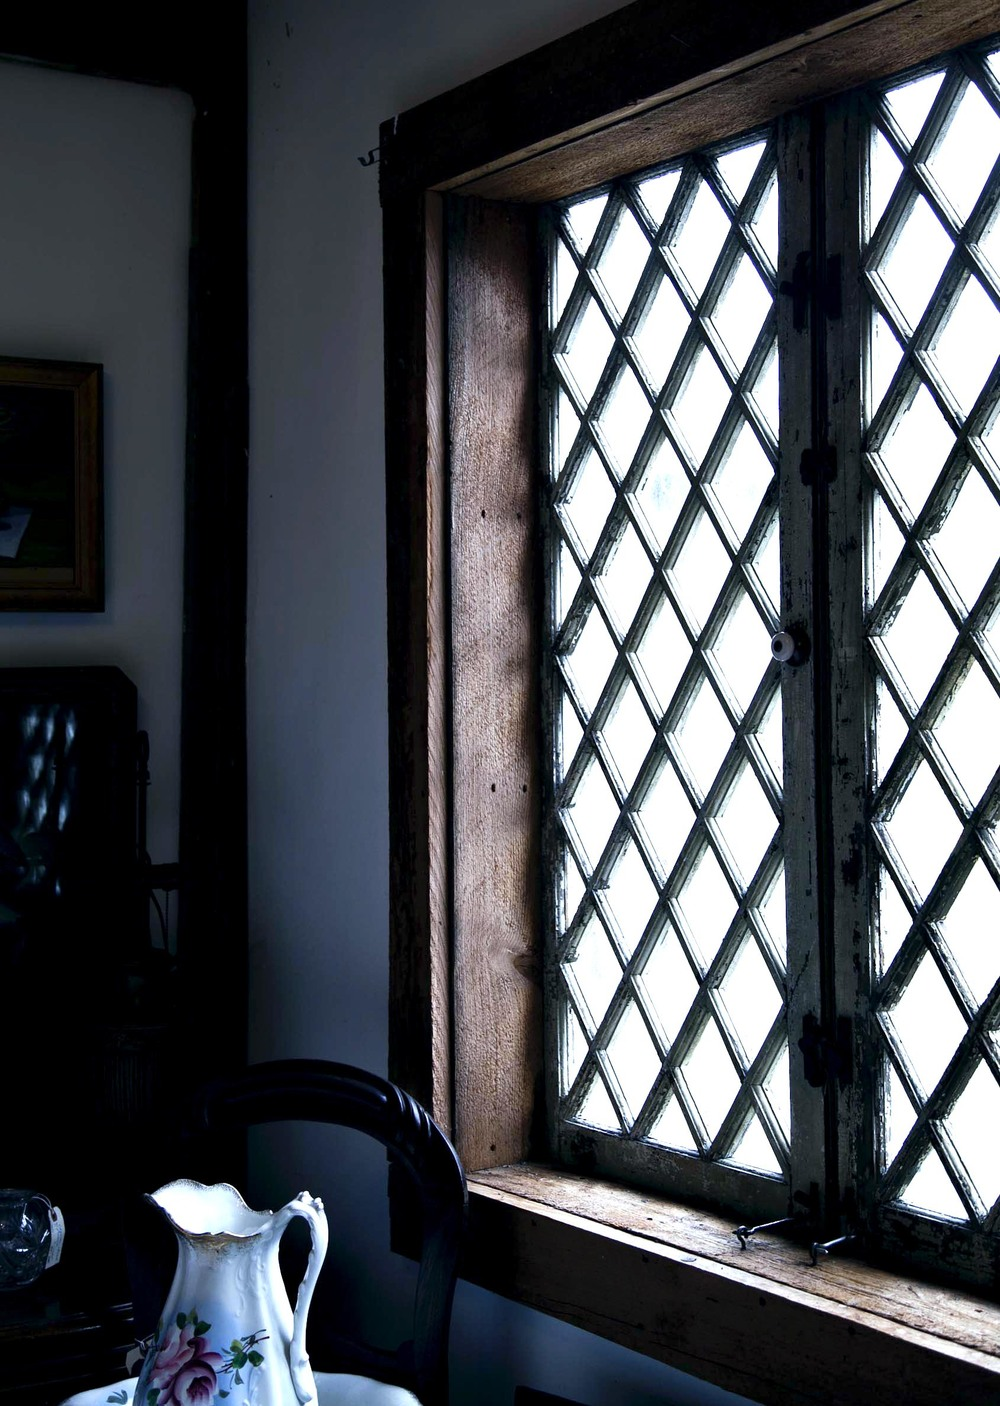 Original wood casing and lattice windows are the details that really warm up this space